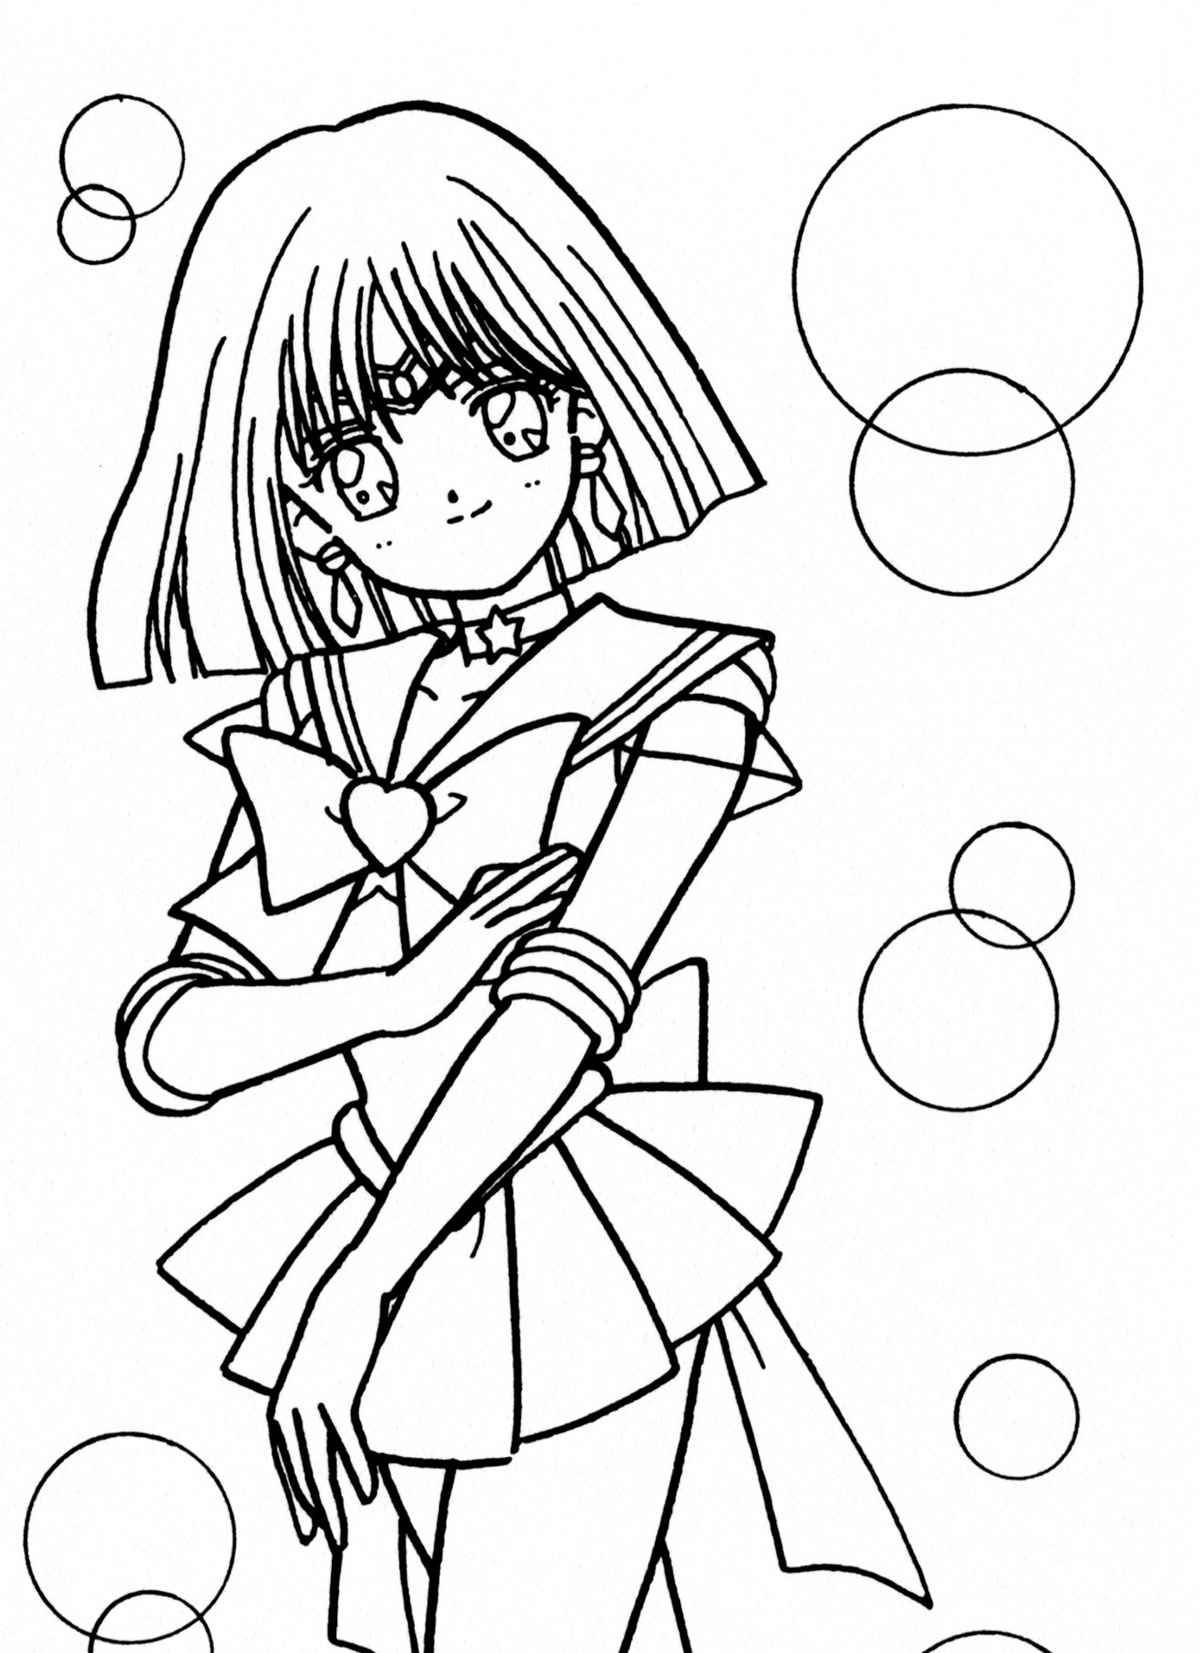 sailor moon coloring pages saturn - photo#6